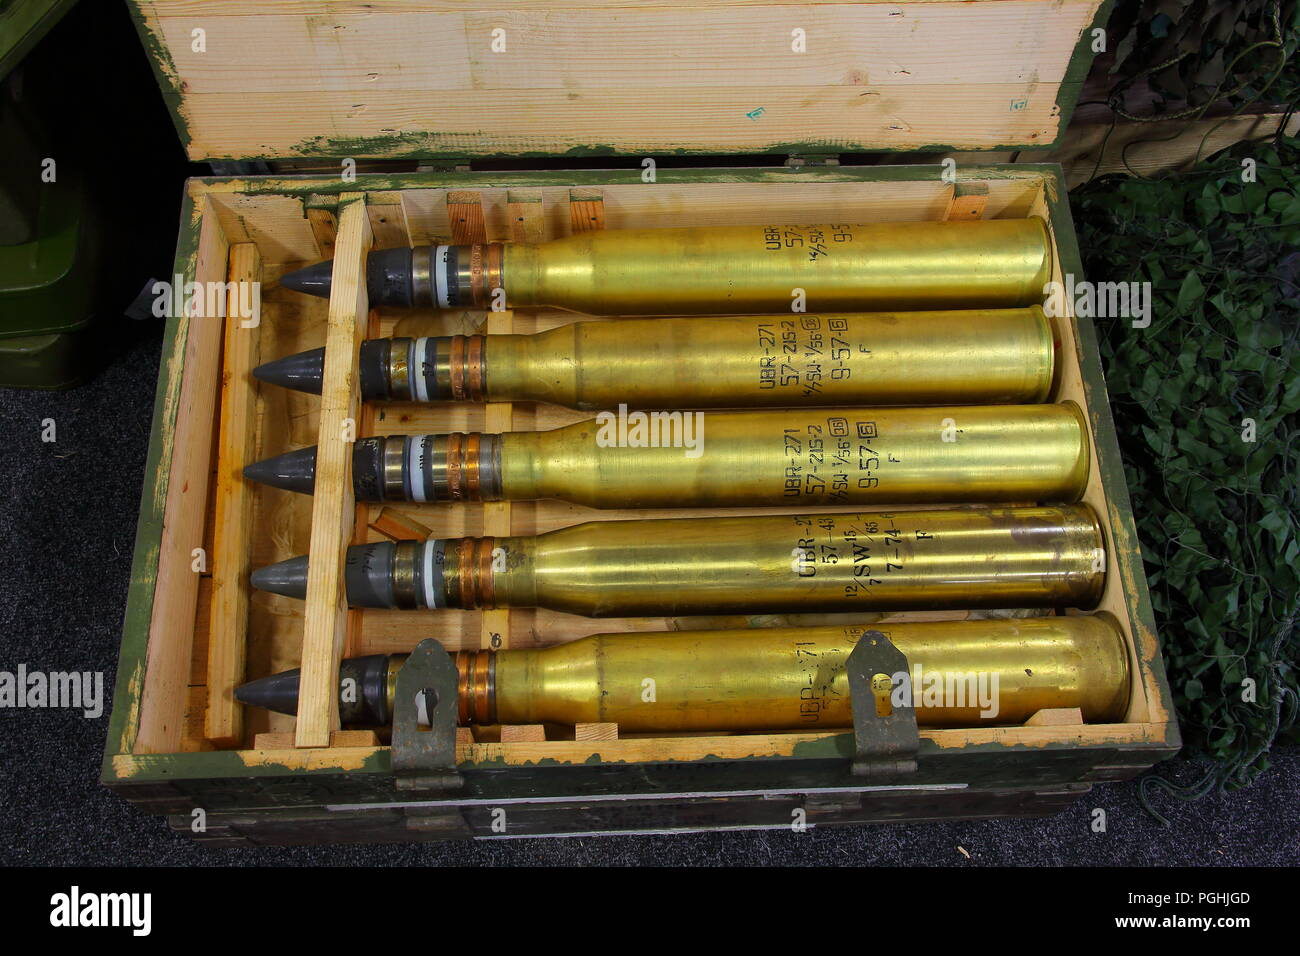 A whole crate of 57 mm Tank gun Armour Piercing Ballistic Capped Tracer rounds for sale having been emptied of expolosive substances at a show. - Stock Image